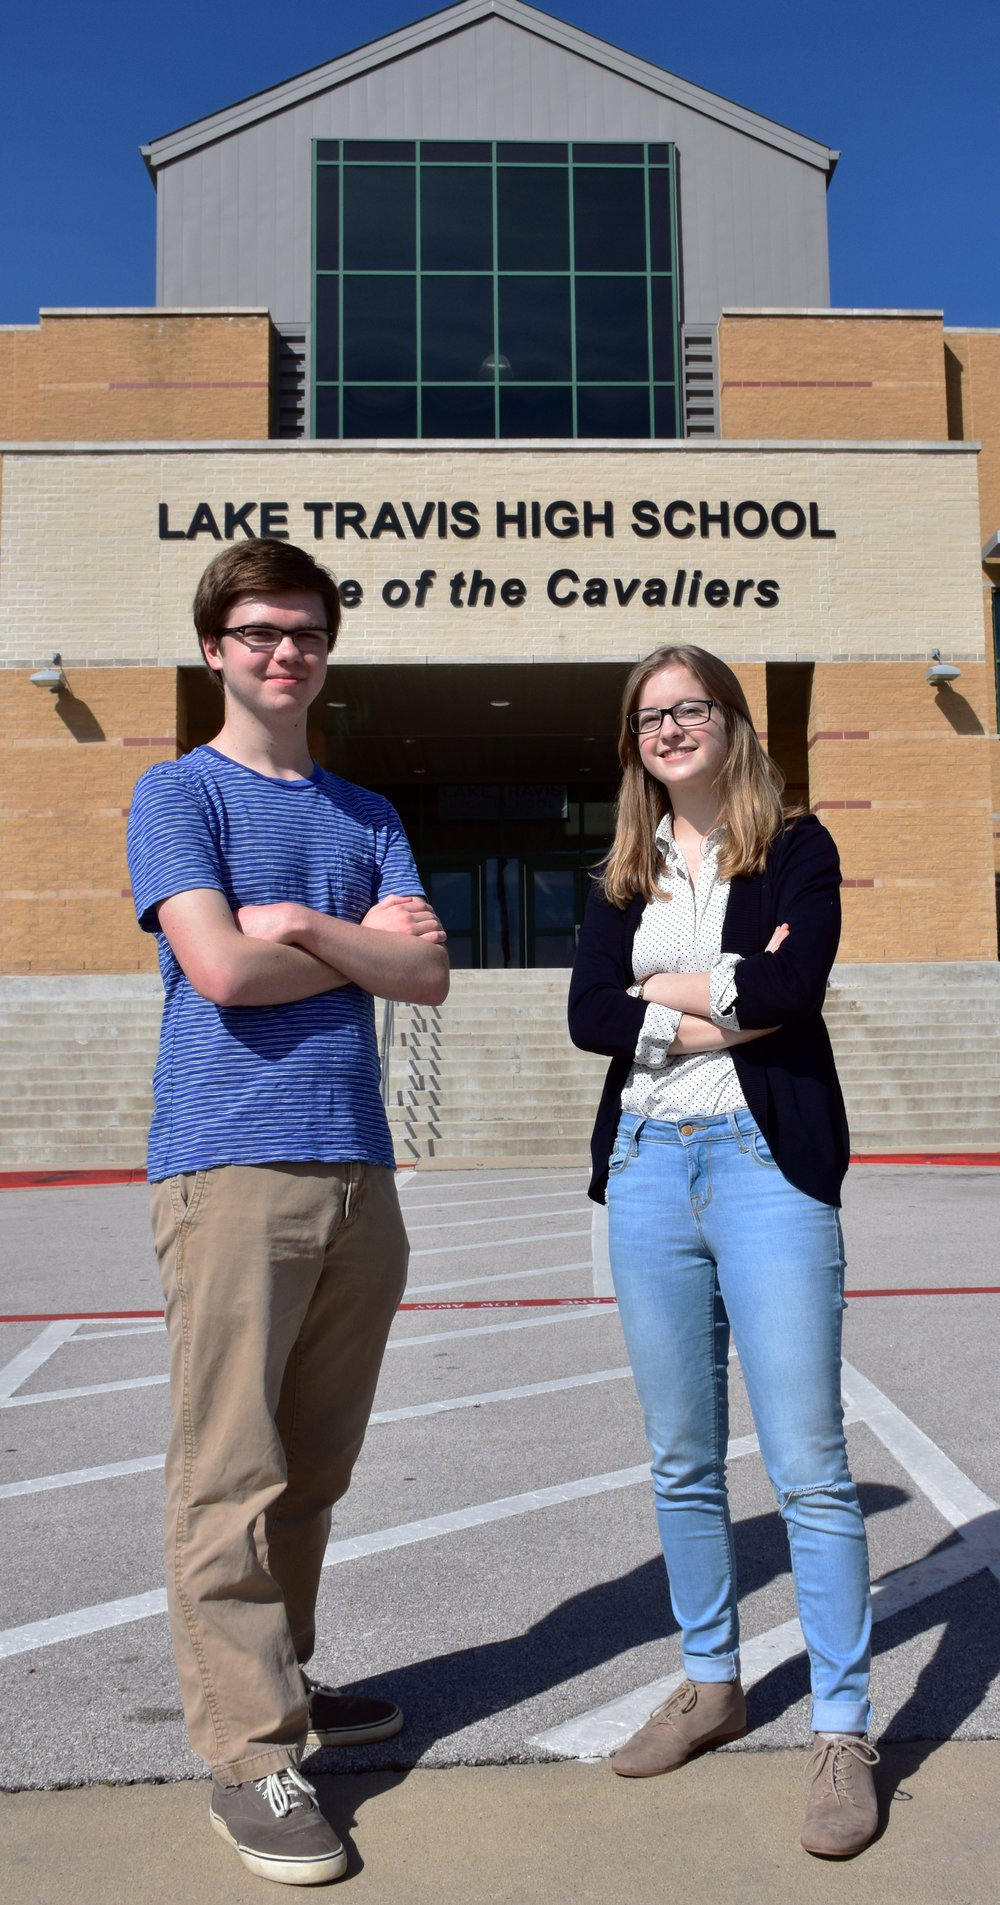 Spencer Buckner,   LTHS Class of 2017 Salutatorian and   Sara Flinn,   LTHS Class of 2017   Valedictorian